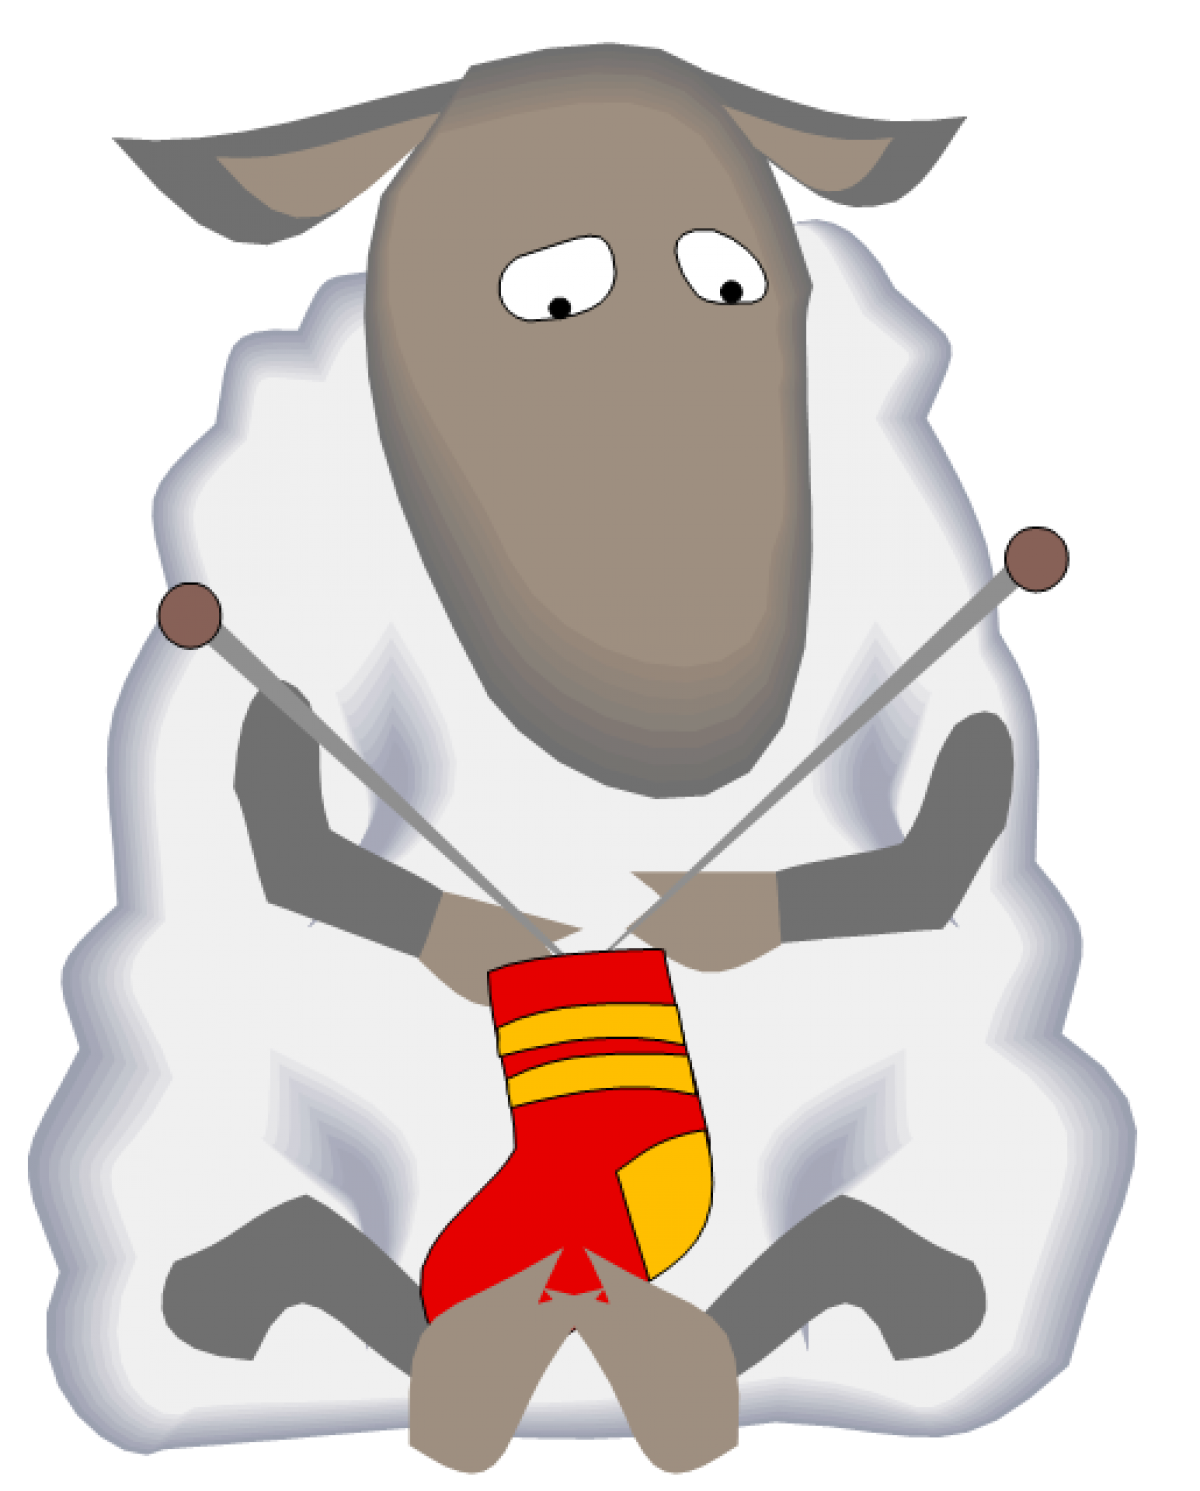 png free stock Knitting sheep clipart. Cropped flipped left to